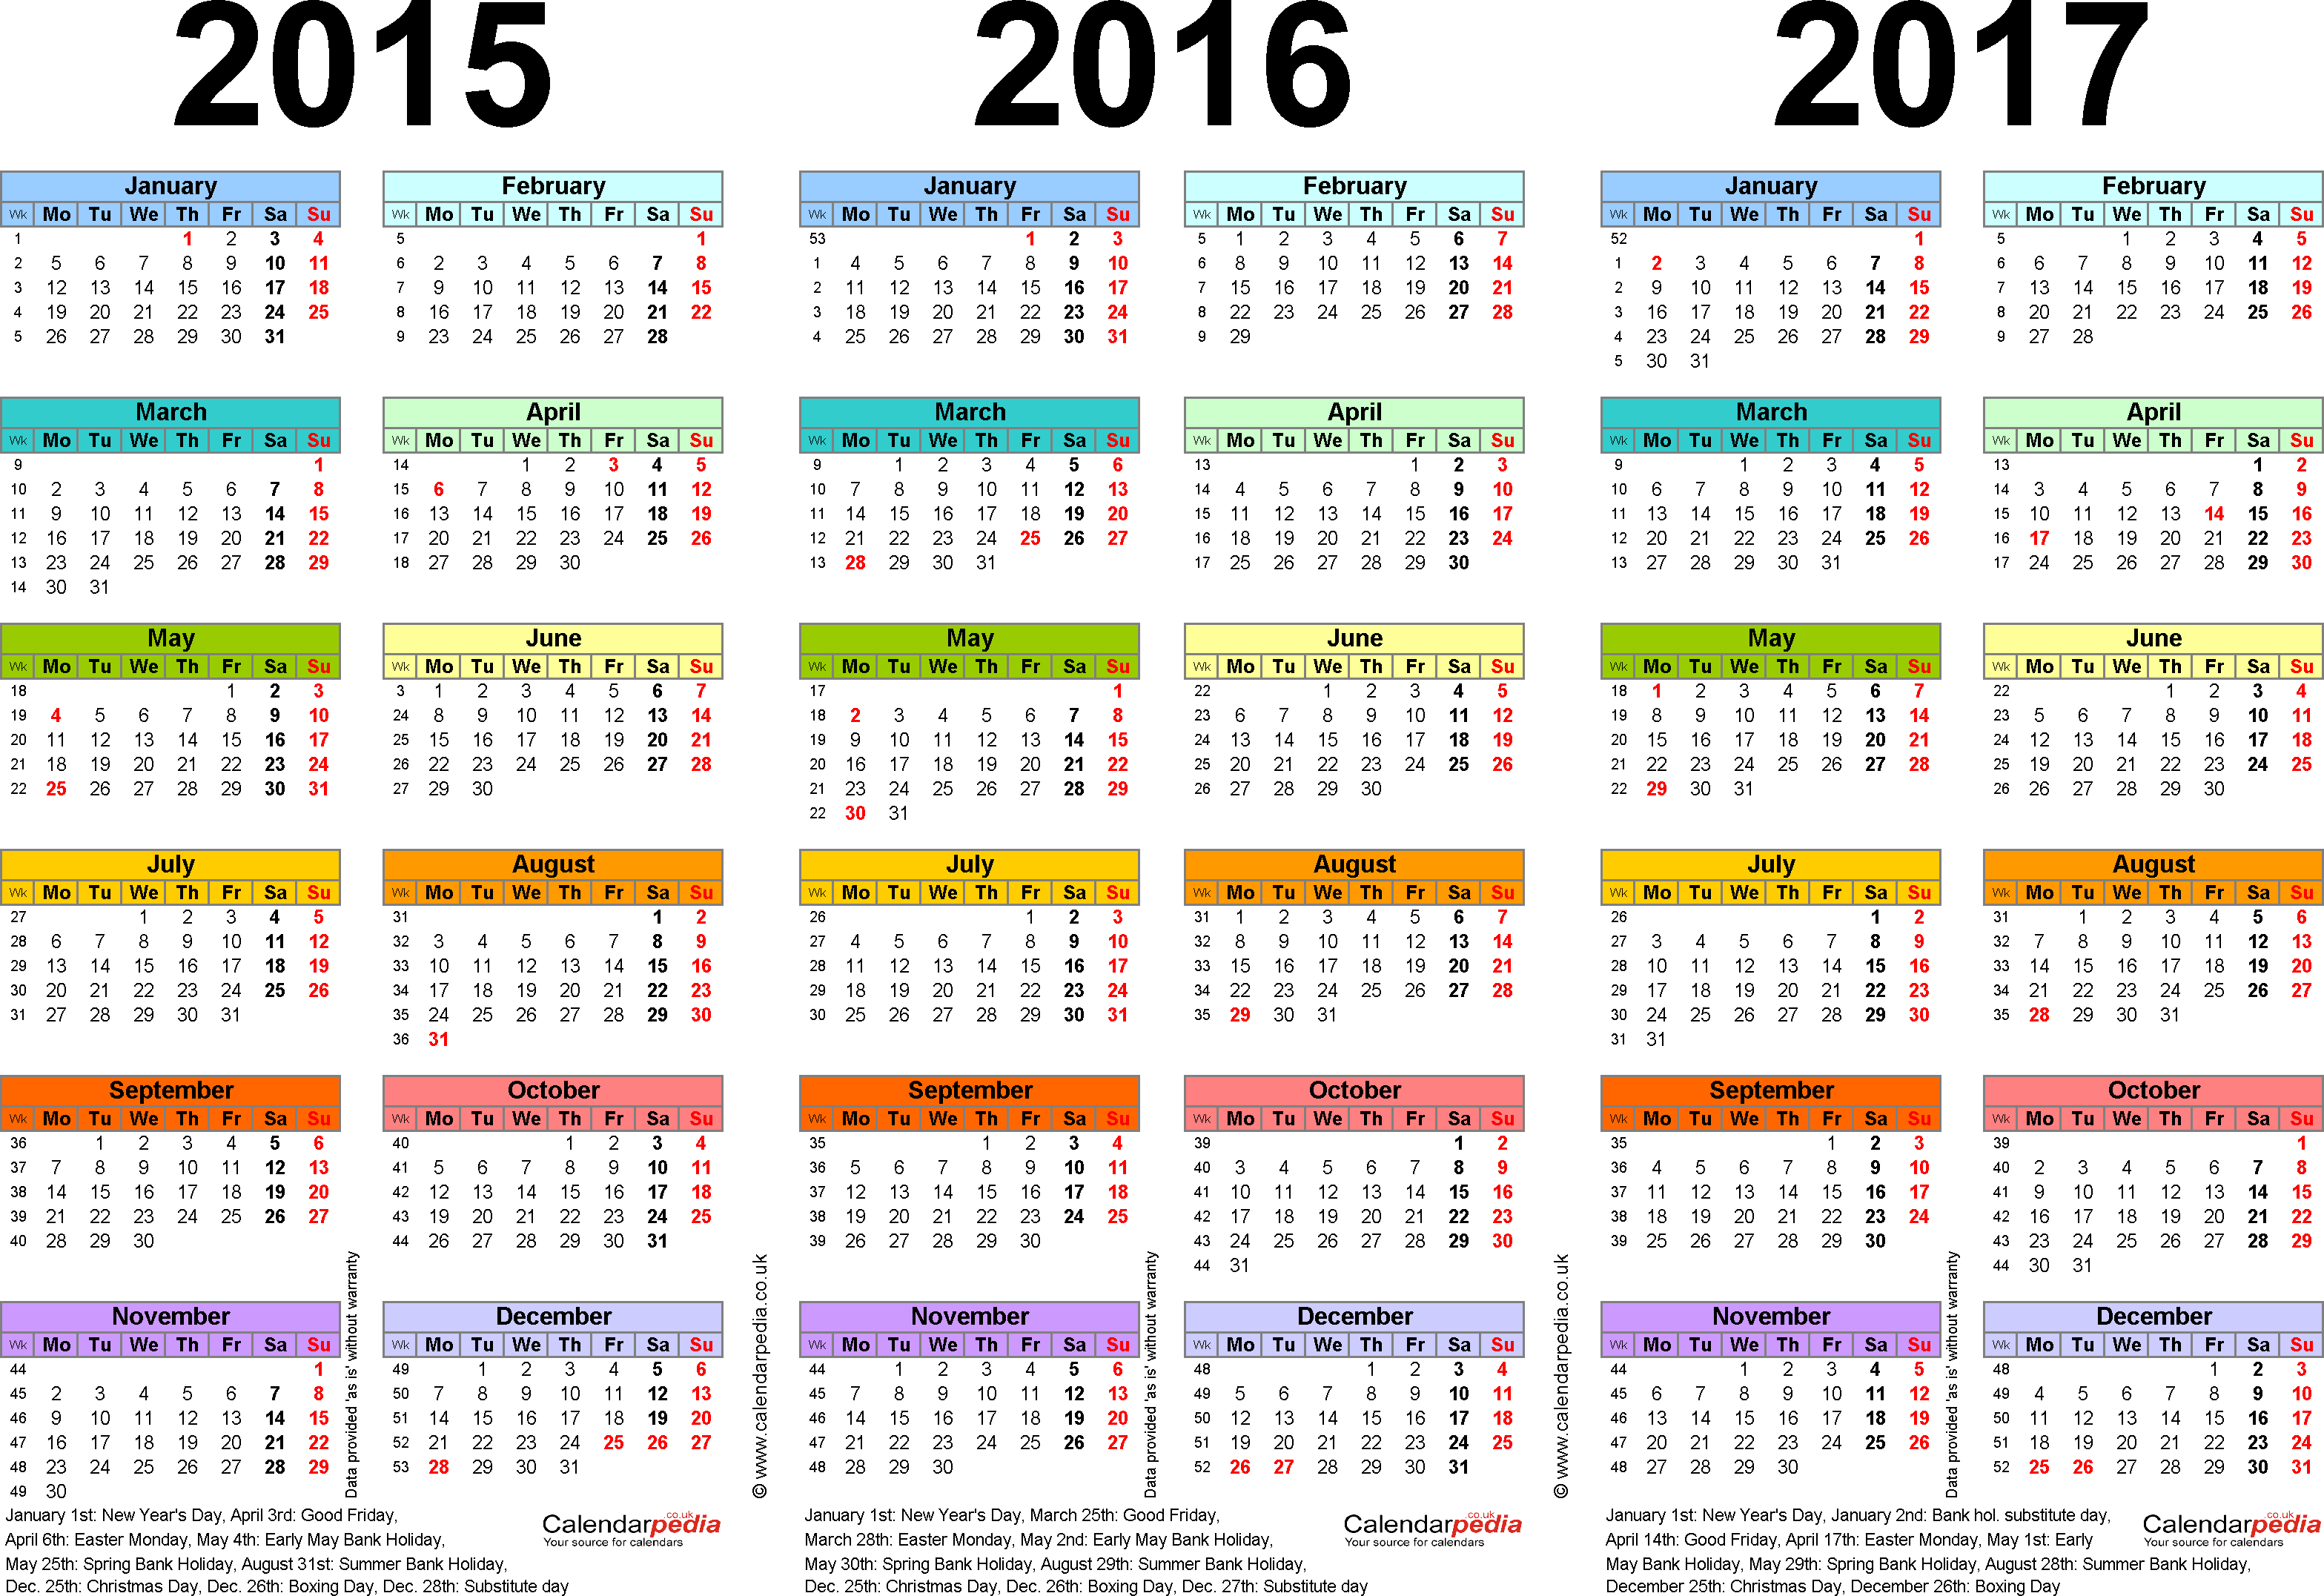 Download Template 1: PDF template for three year calendar 2015-2017 in colour (landscape orientation, 1 page, A4)